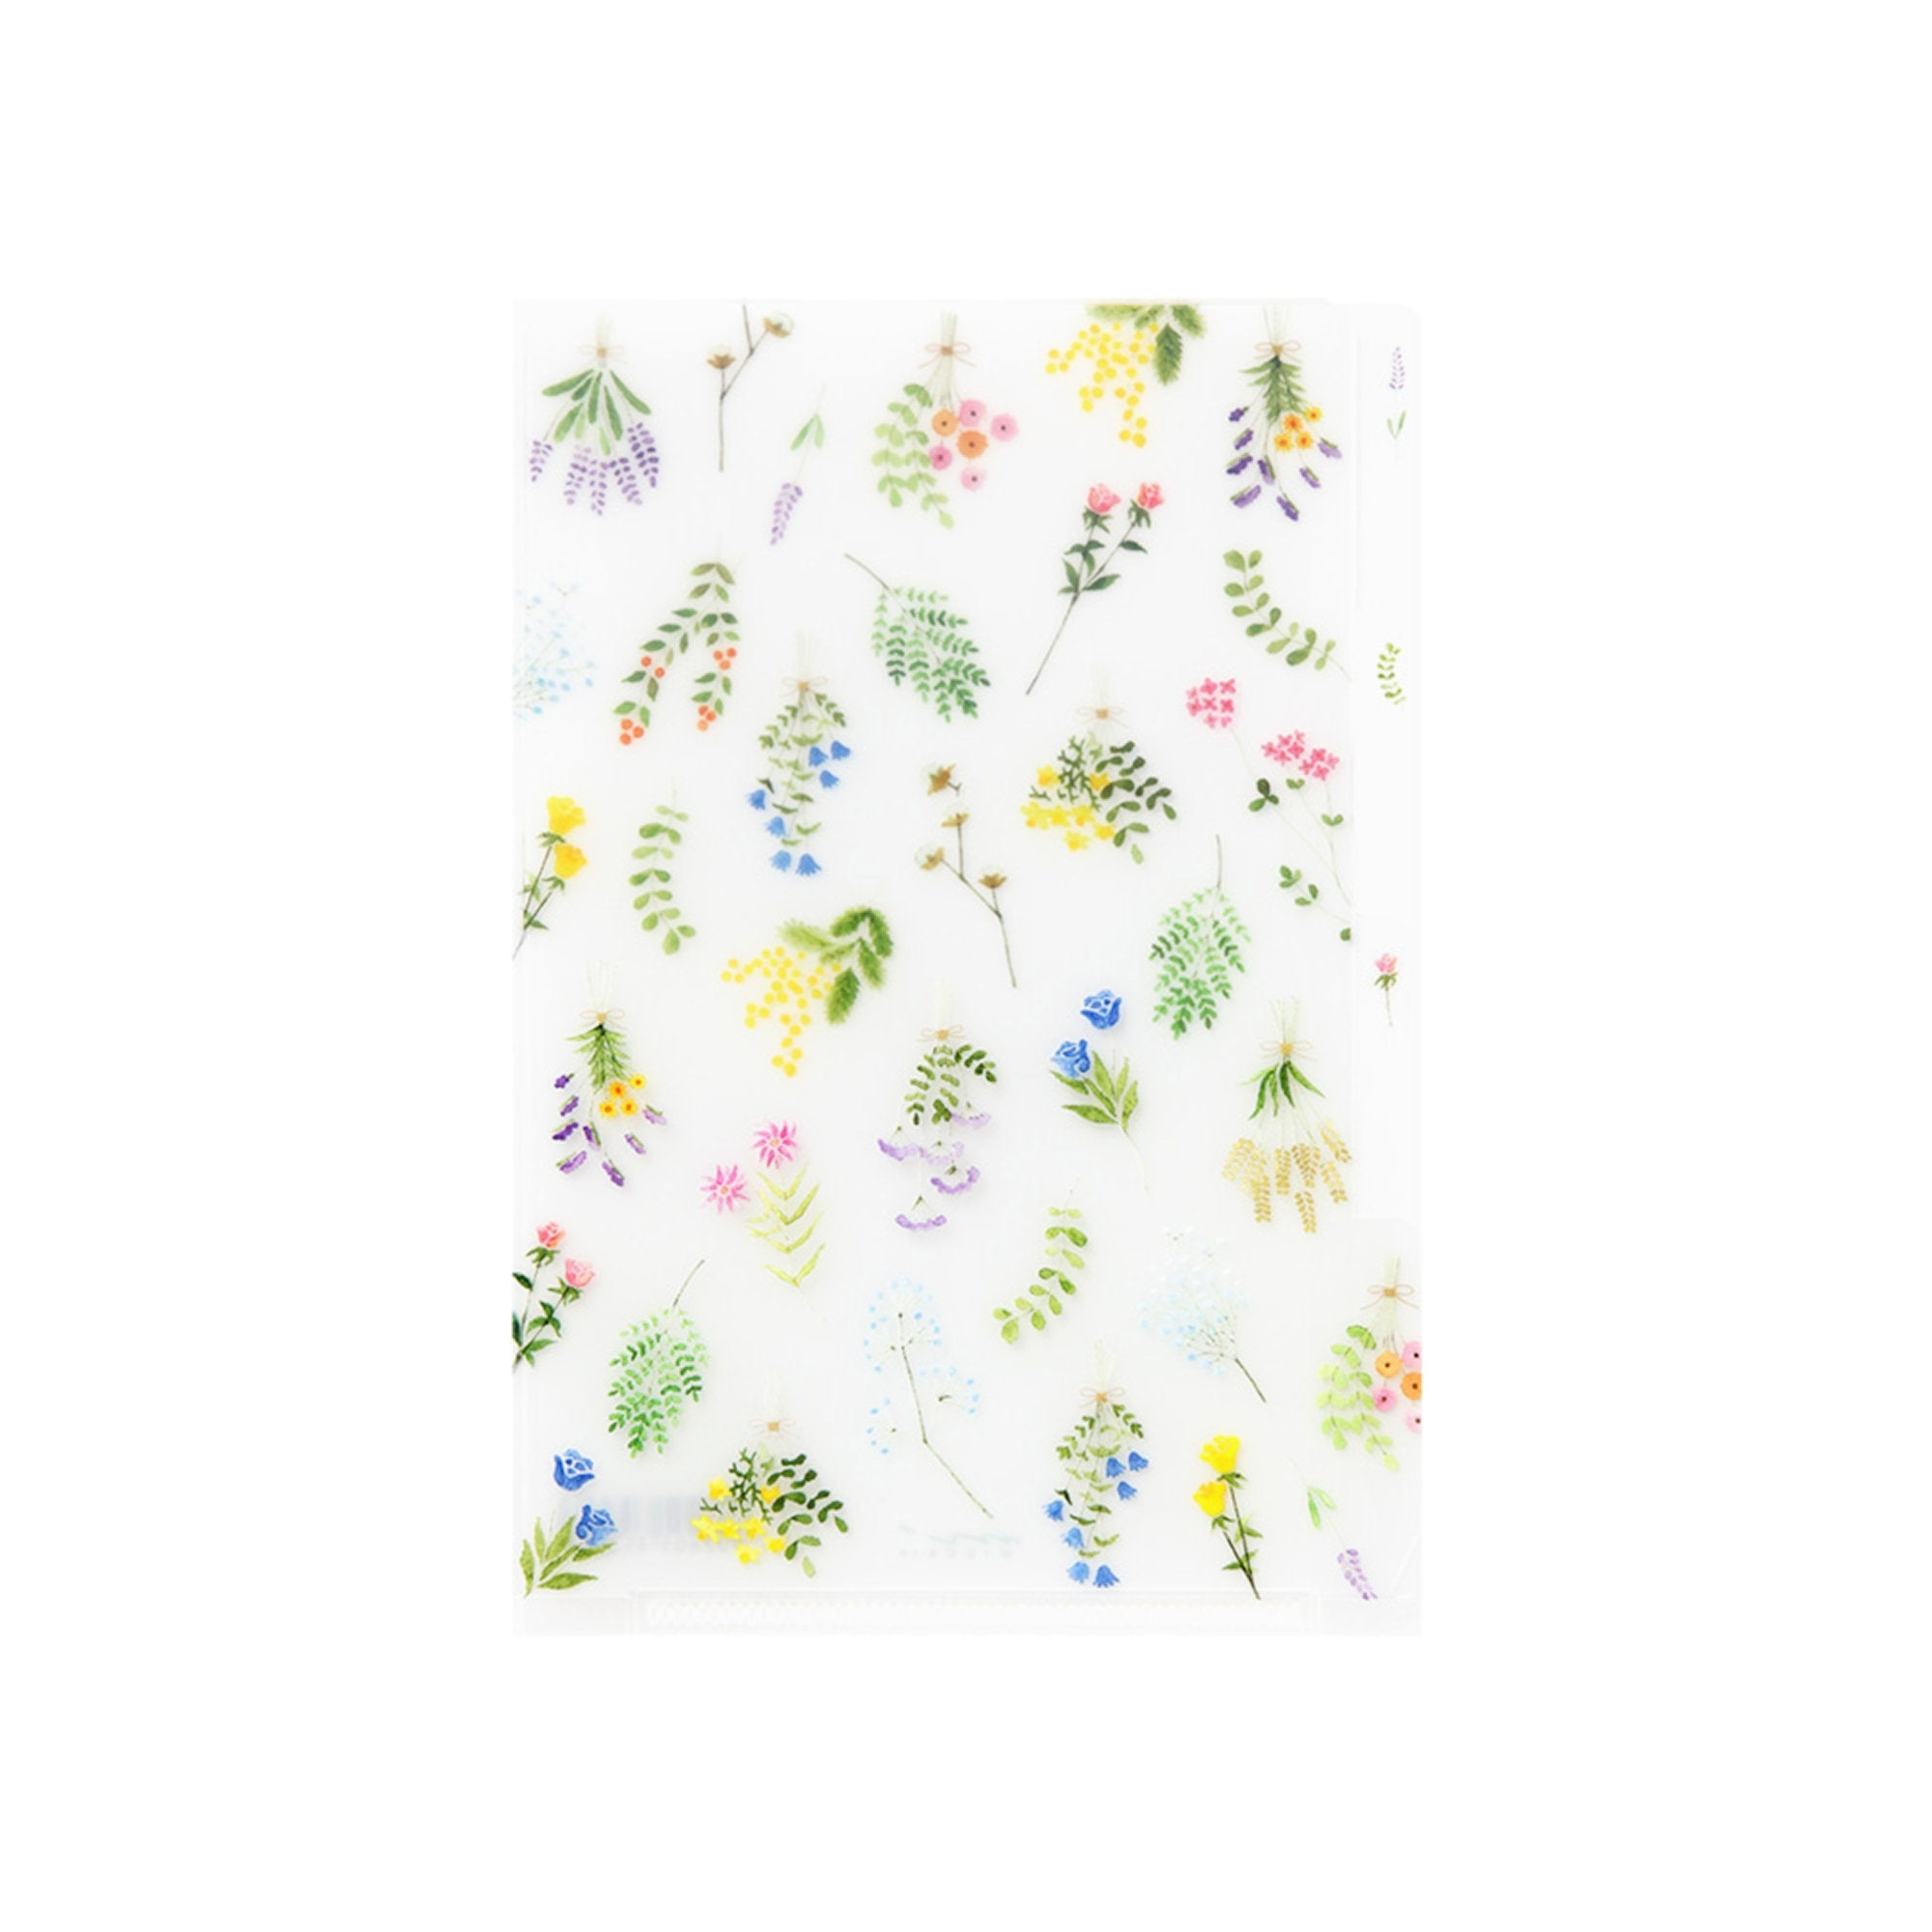 Midori MD A4 3 Pocket Clear Folder | Dried Flowers - The Stationery Life!